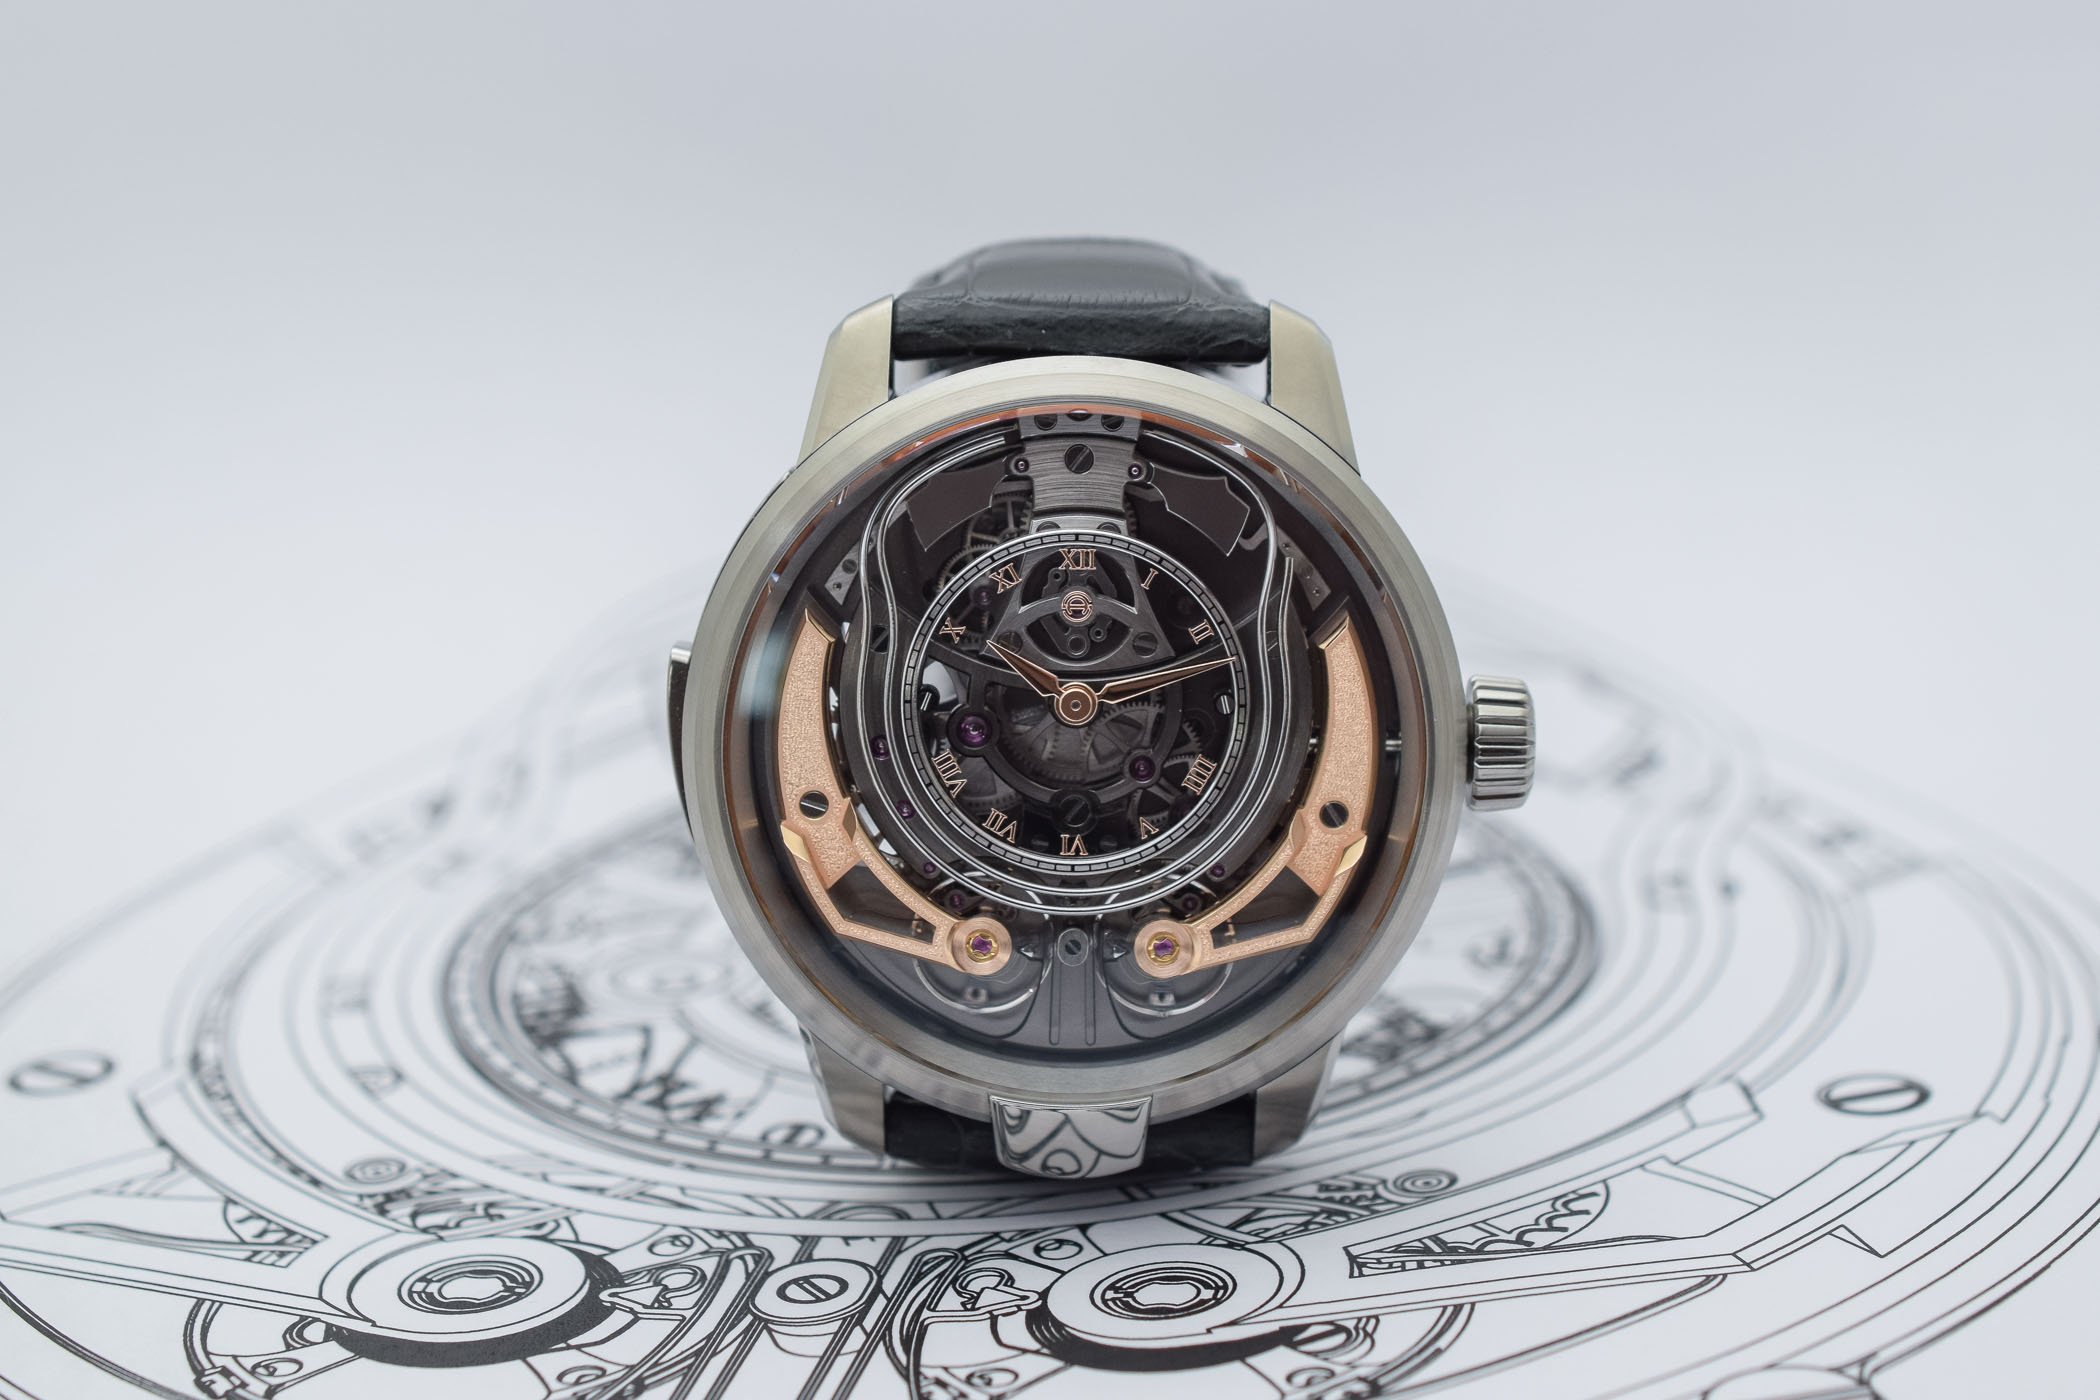 https://k8q7r7a2.stackpathcdn.com/wp-content/uploads/2019/07/Armin-Strom-Minute-Repeater-Resonance-Masterpiece-2-10.jpg